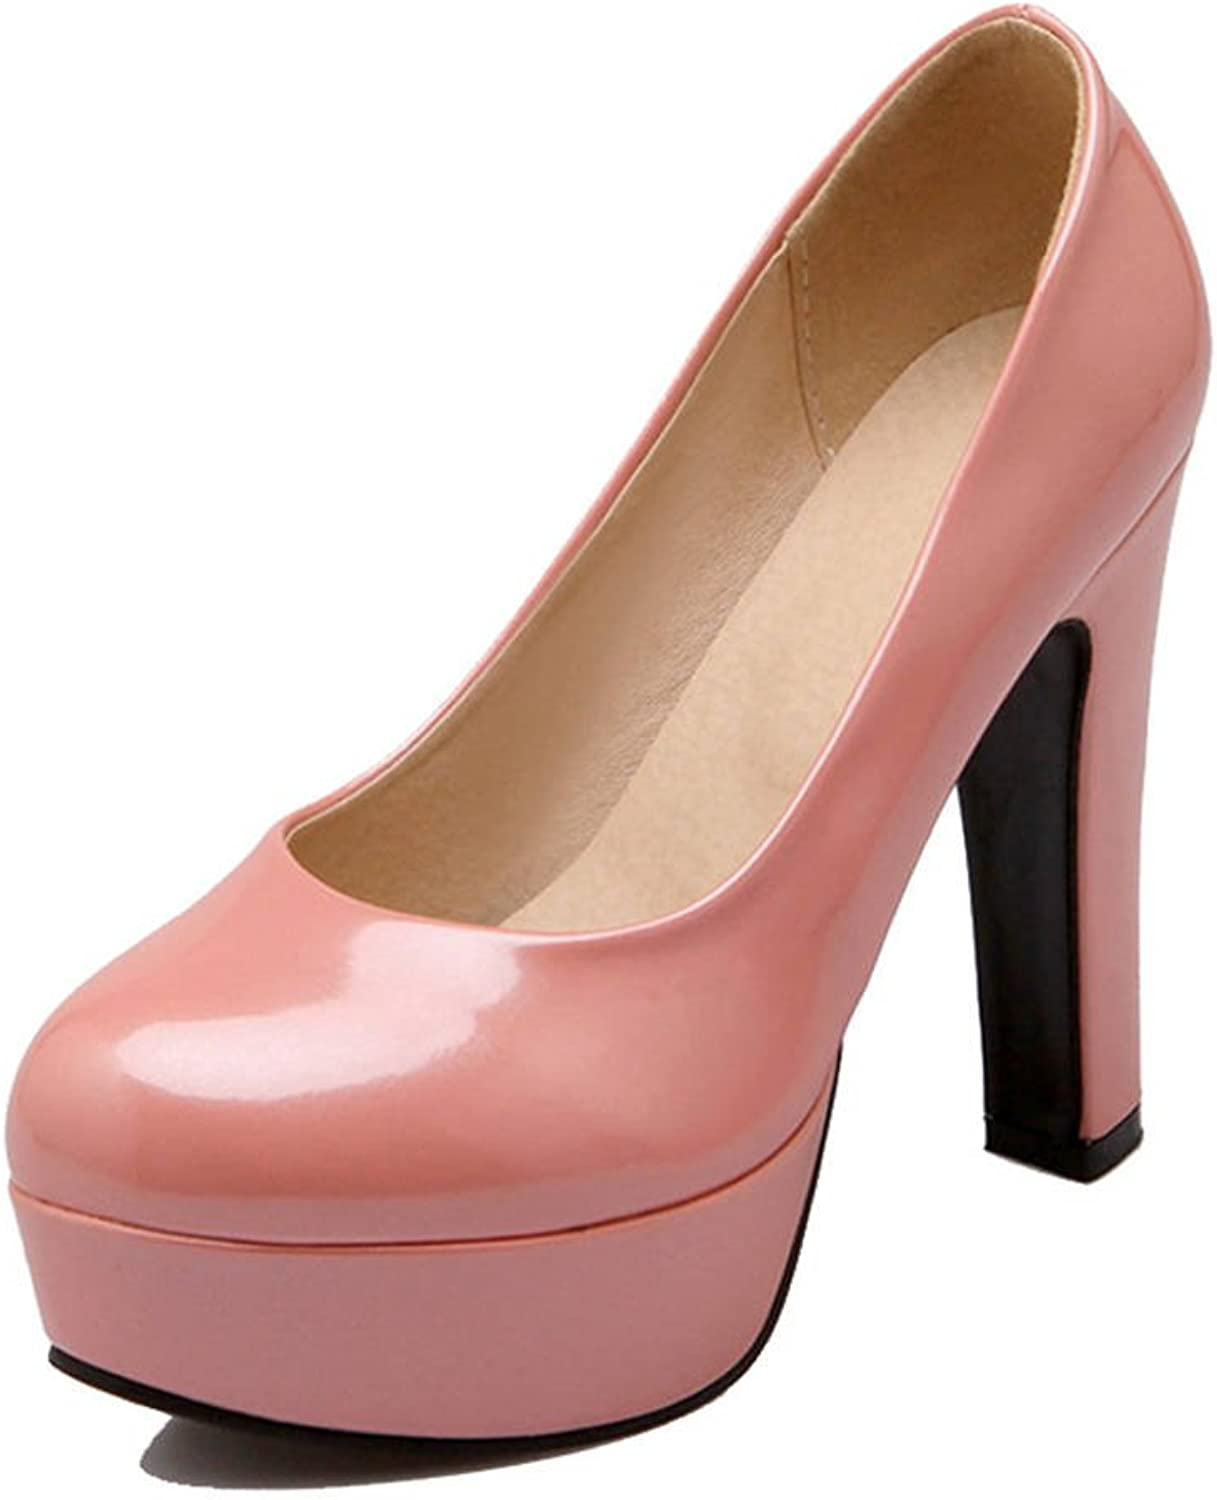 SJJH Pumps with High Heel and Thick Platform All Macth Women shoes with Large Size Available